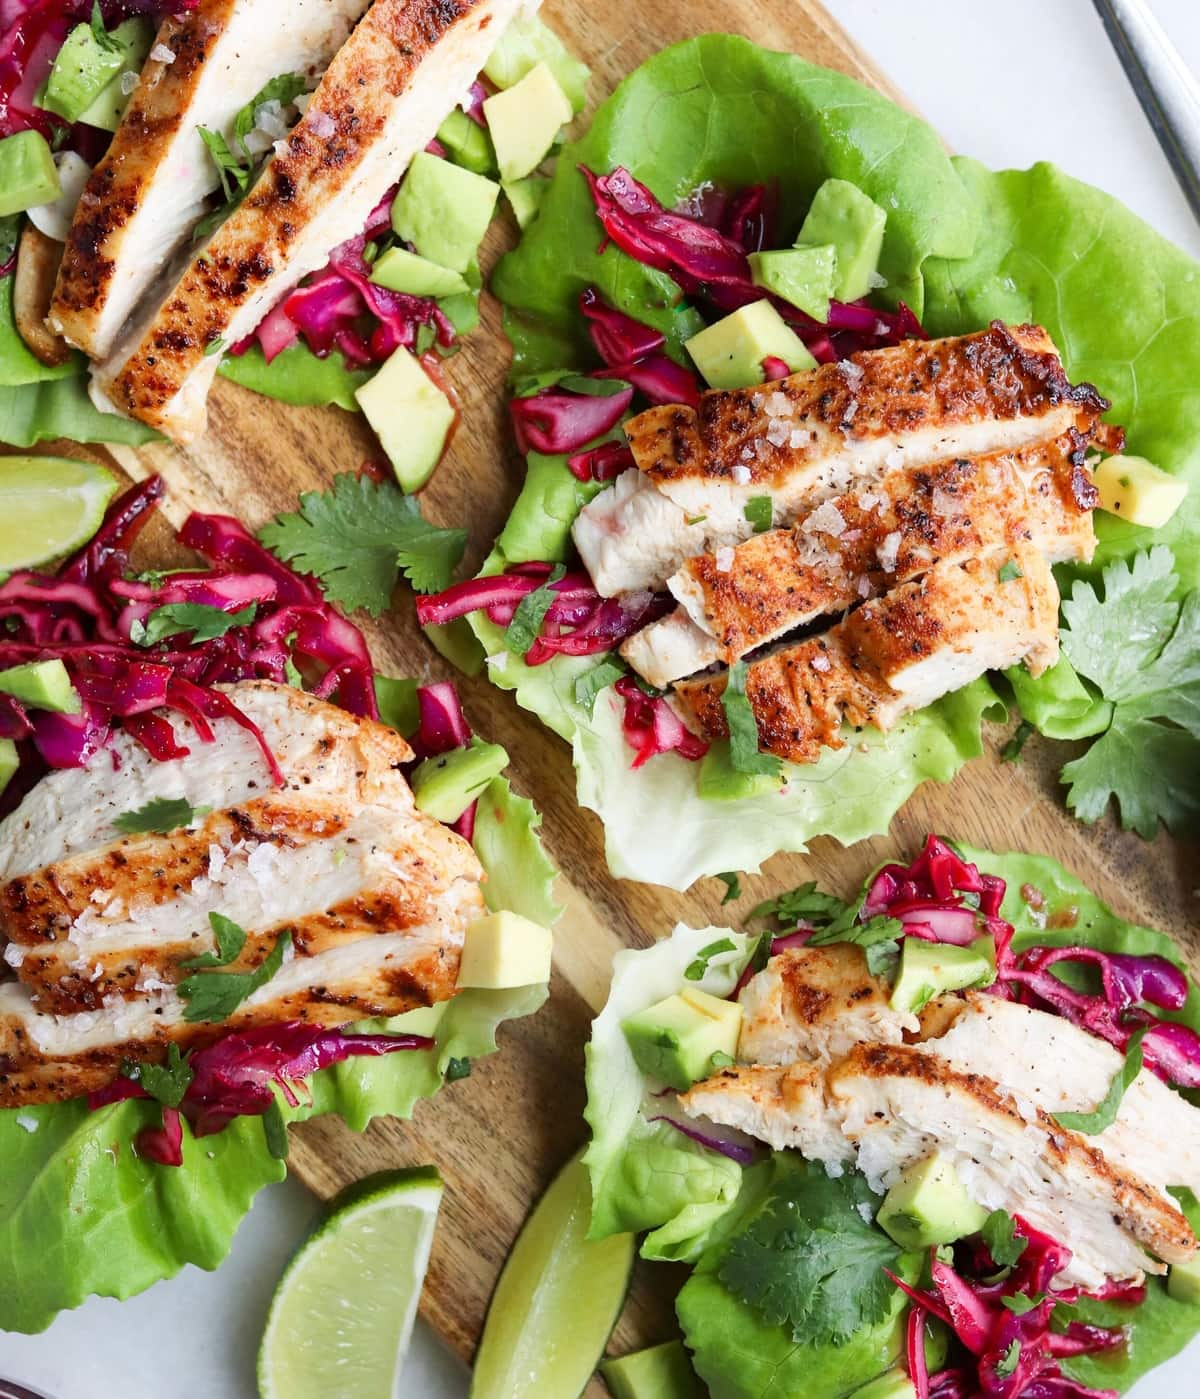 Sliced grilled chicken on lettuce wraps with pickled cabbage.